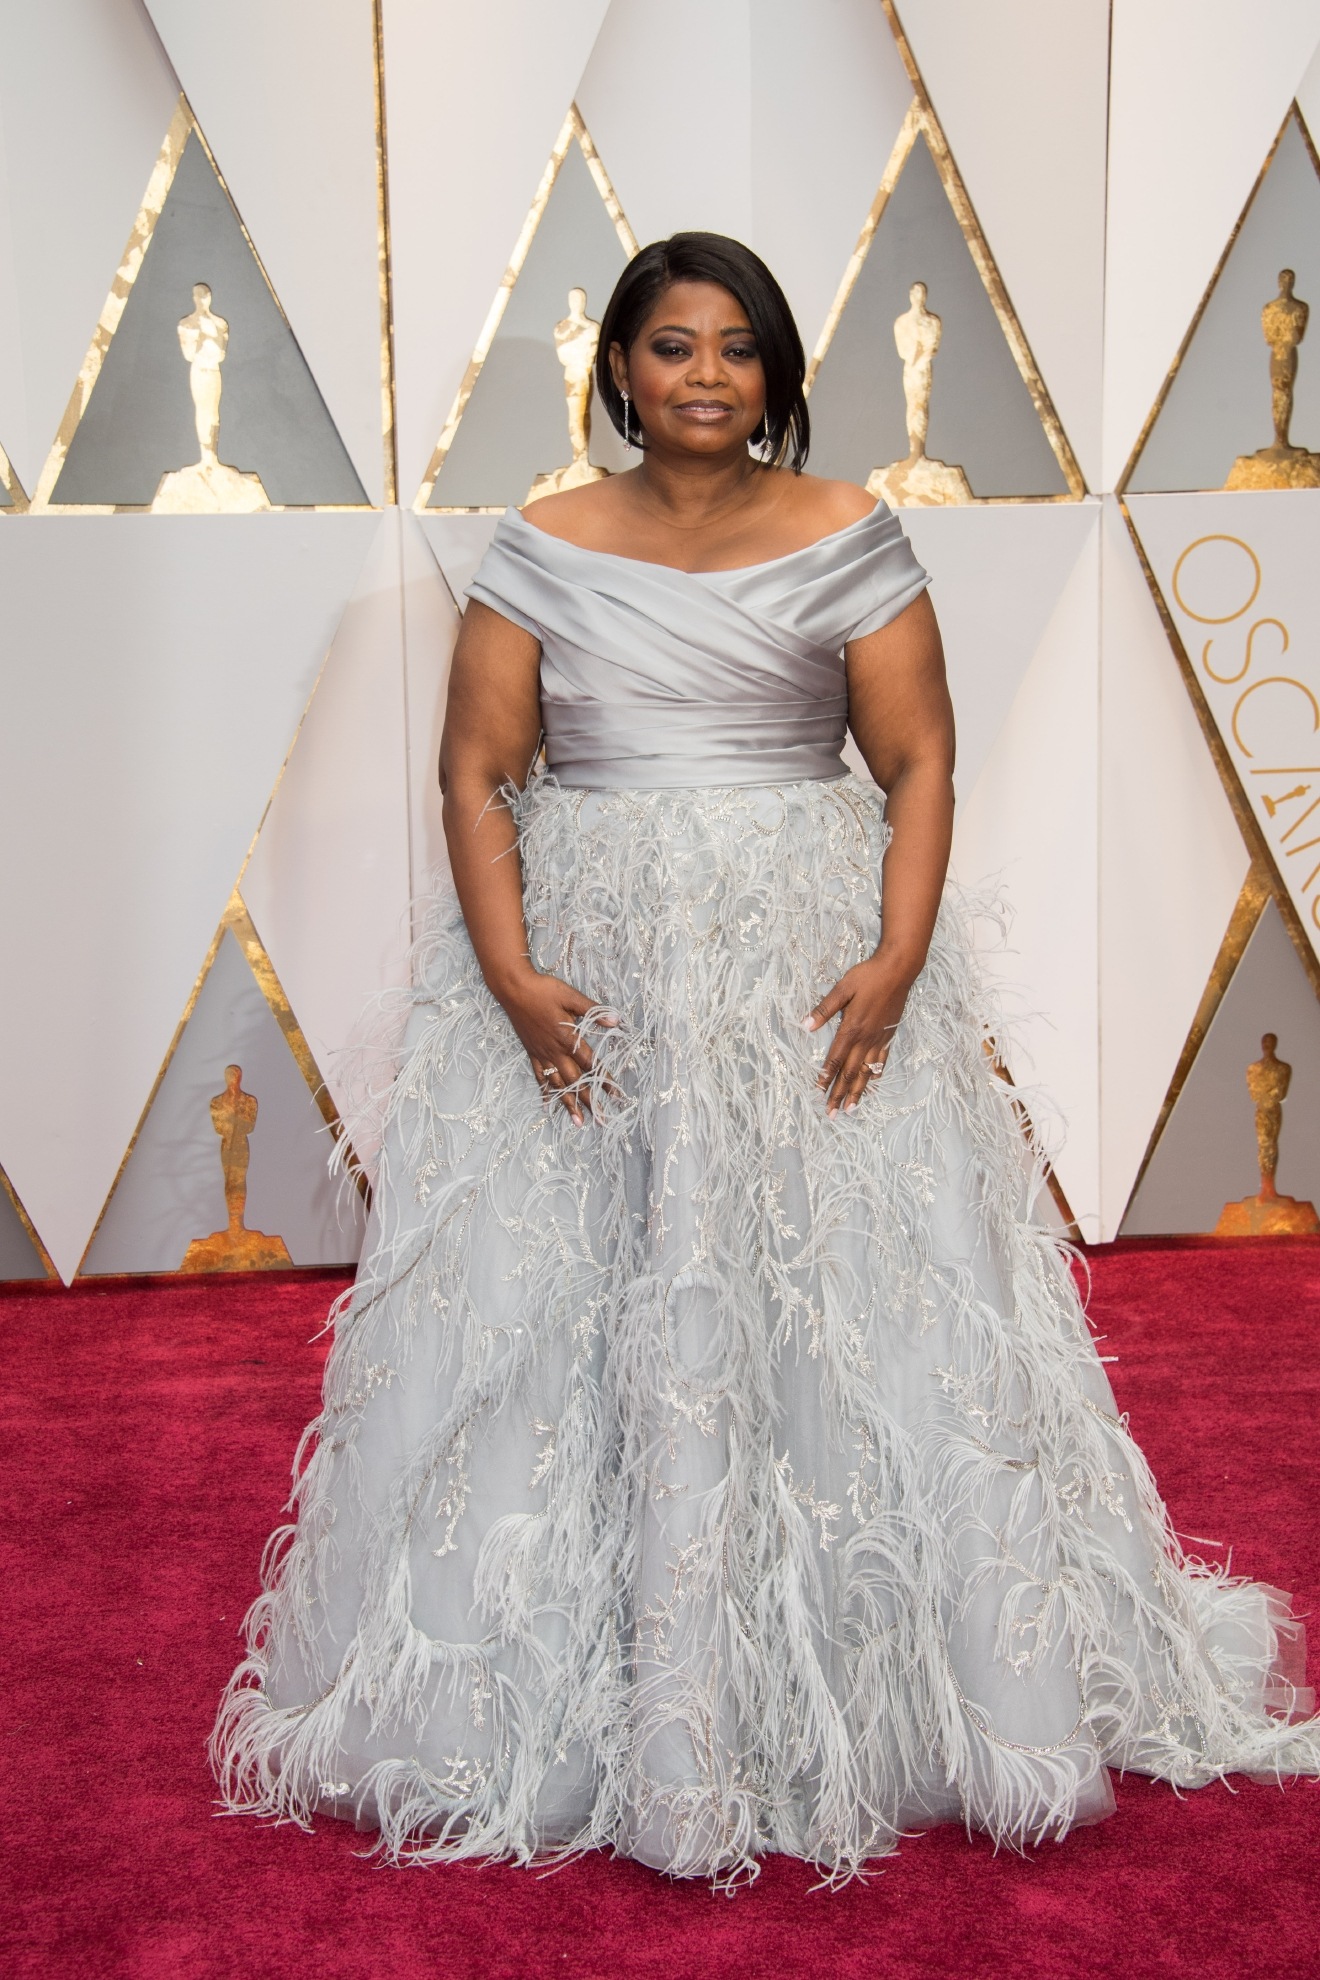 #36: Octavia Spencer. Top of the dress? Love. Bottom ruffly feathers? Not so much. (Image: AMPAS)